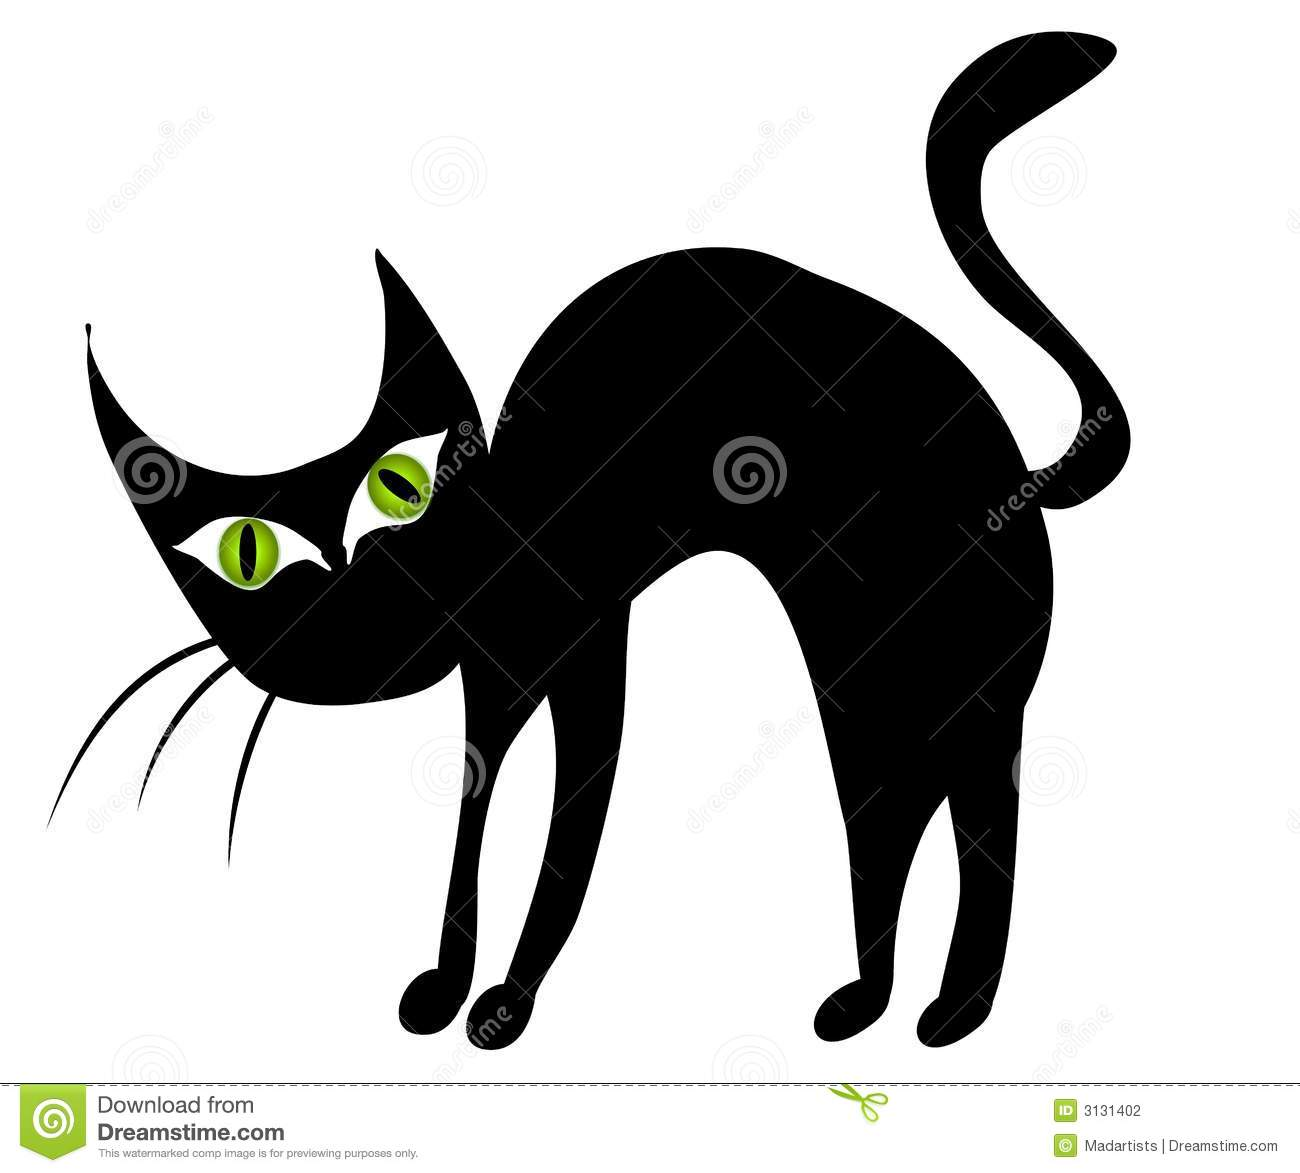 Isolated black cat clip art 2 illustration megapixl jpg.